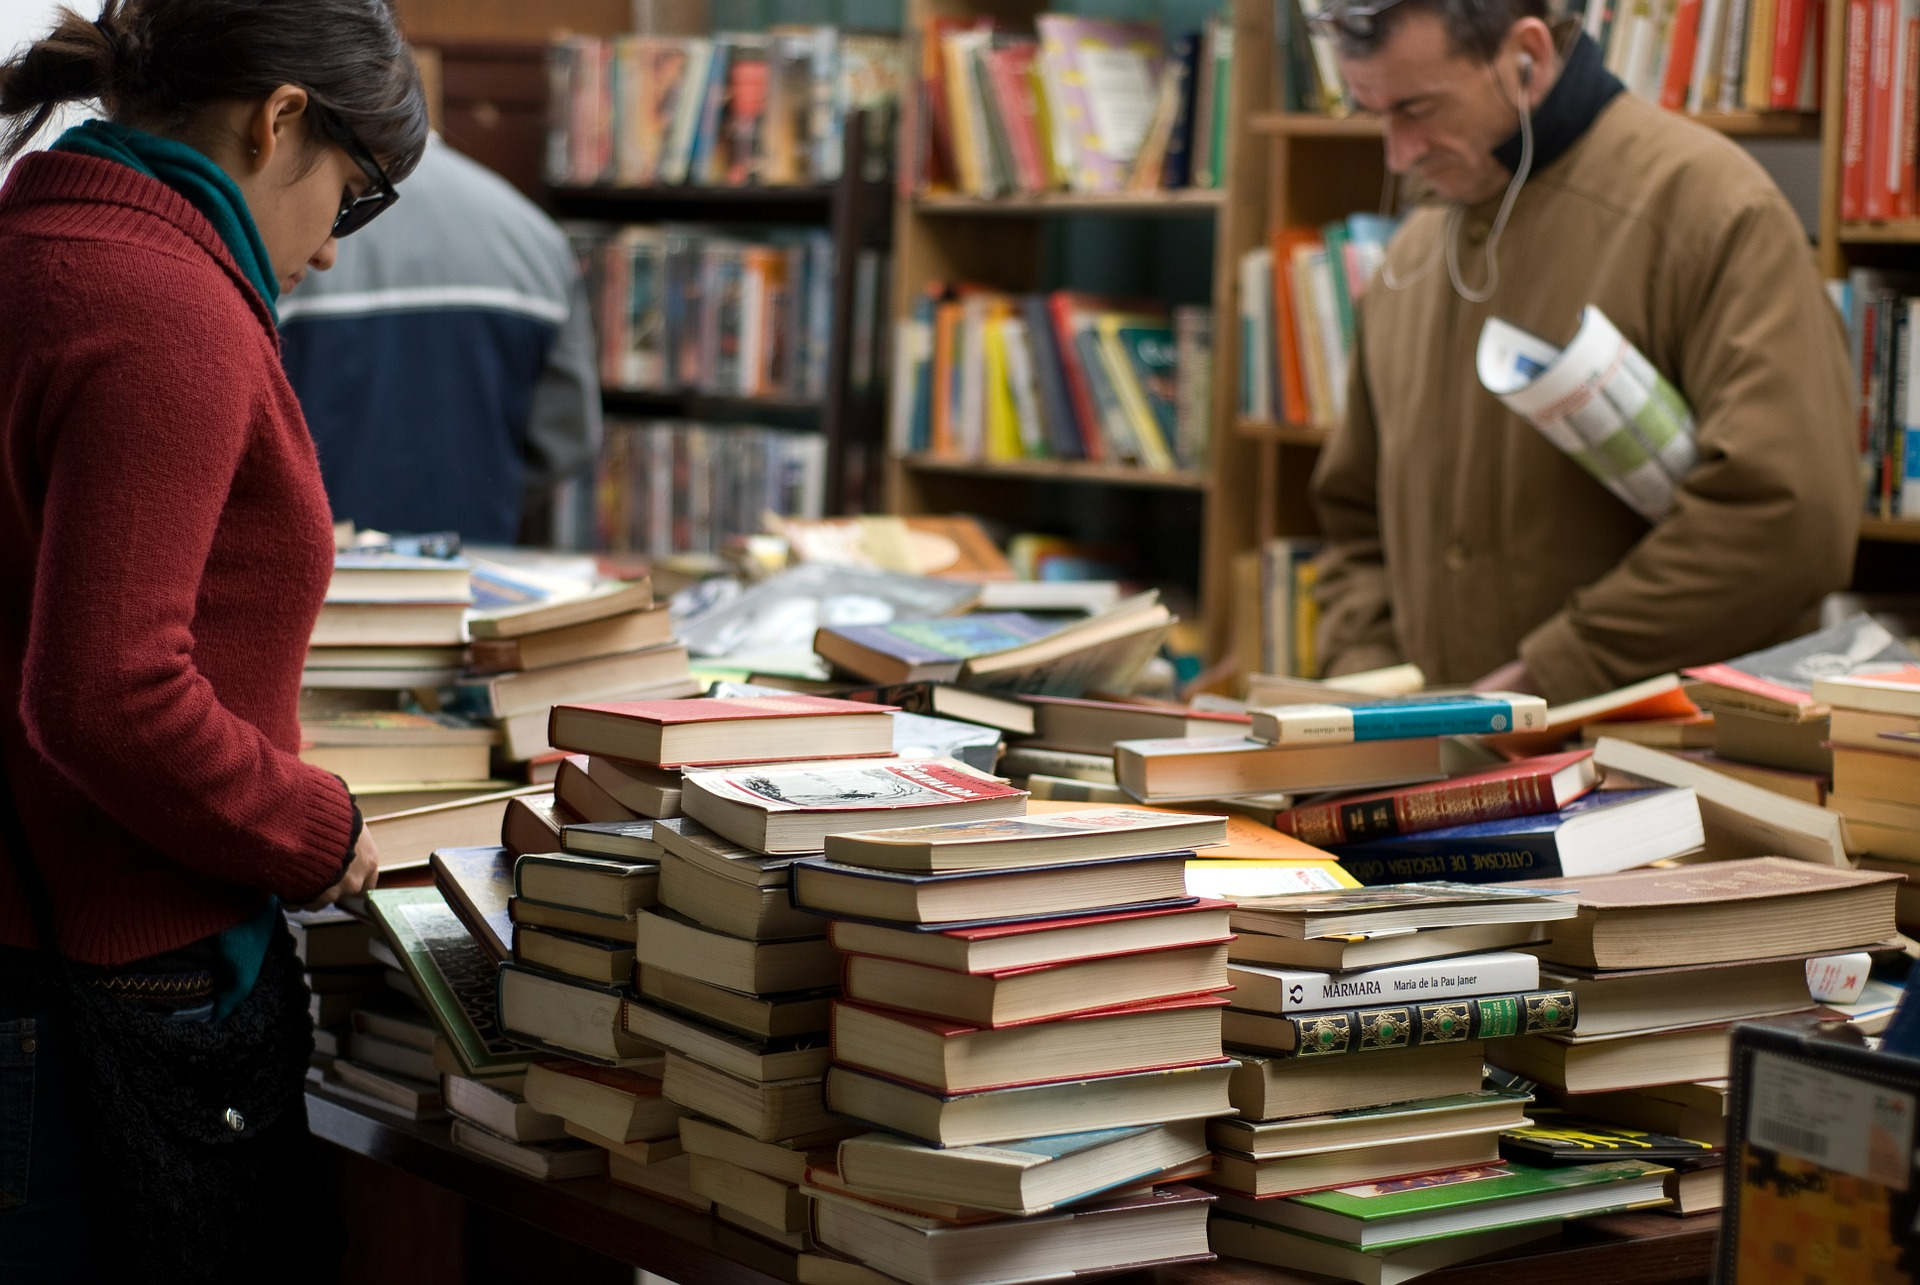 How Many Books Does The Average Person Read